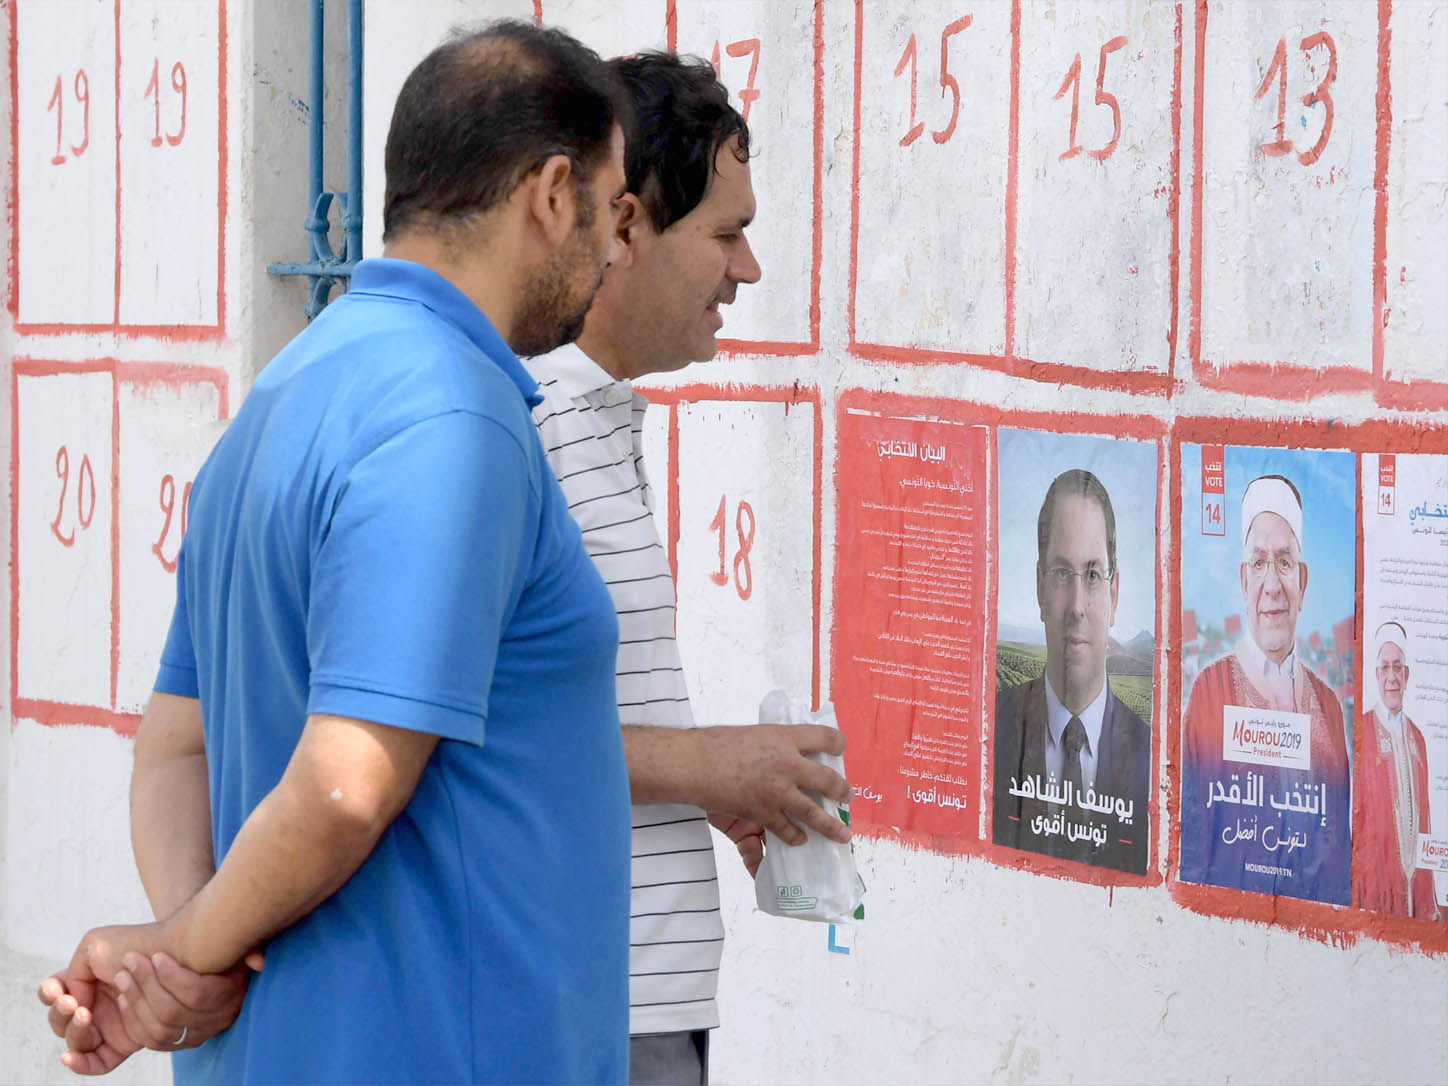 Tunisians look at posters of presidential candidates in Tunis. (AFP)